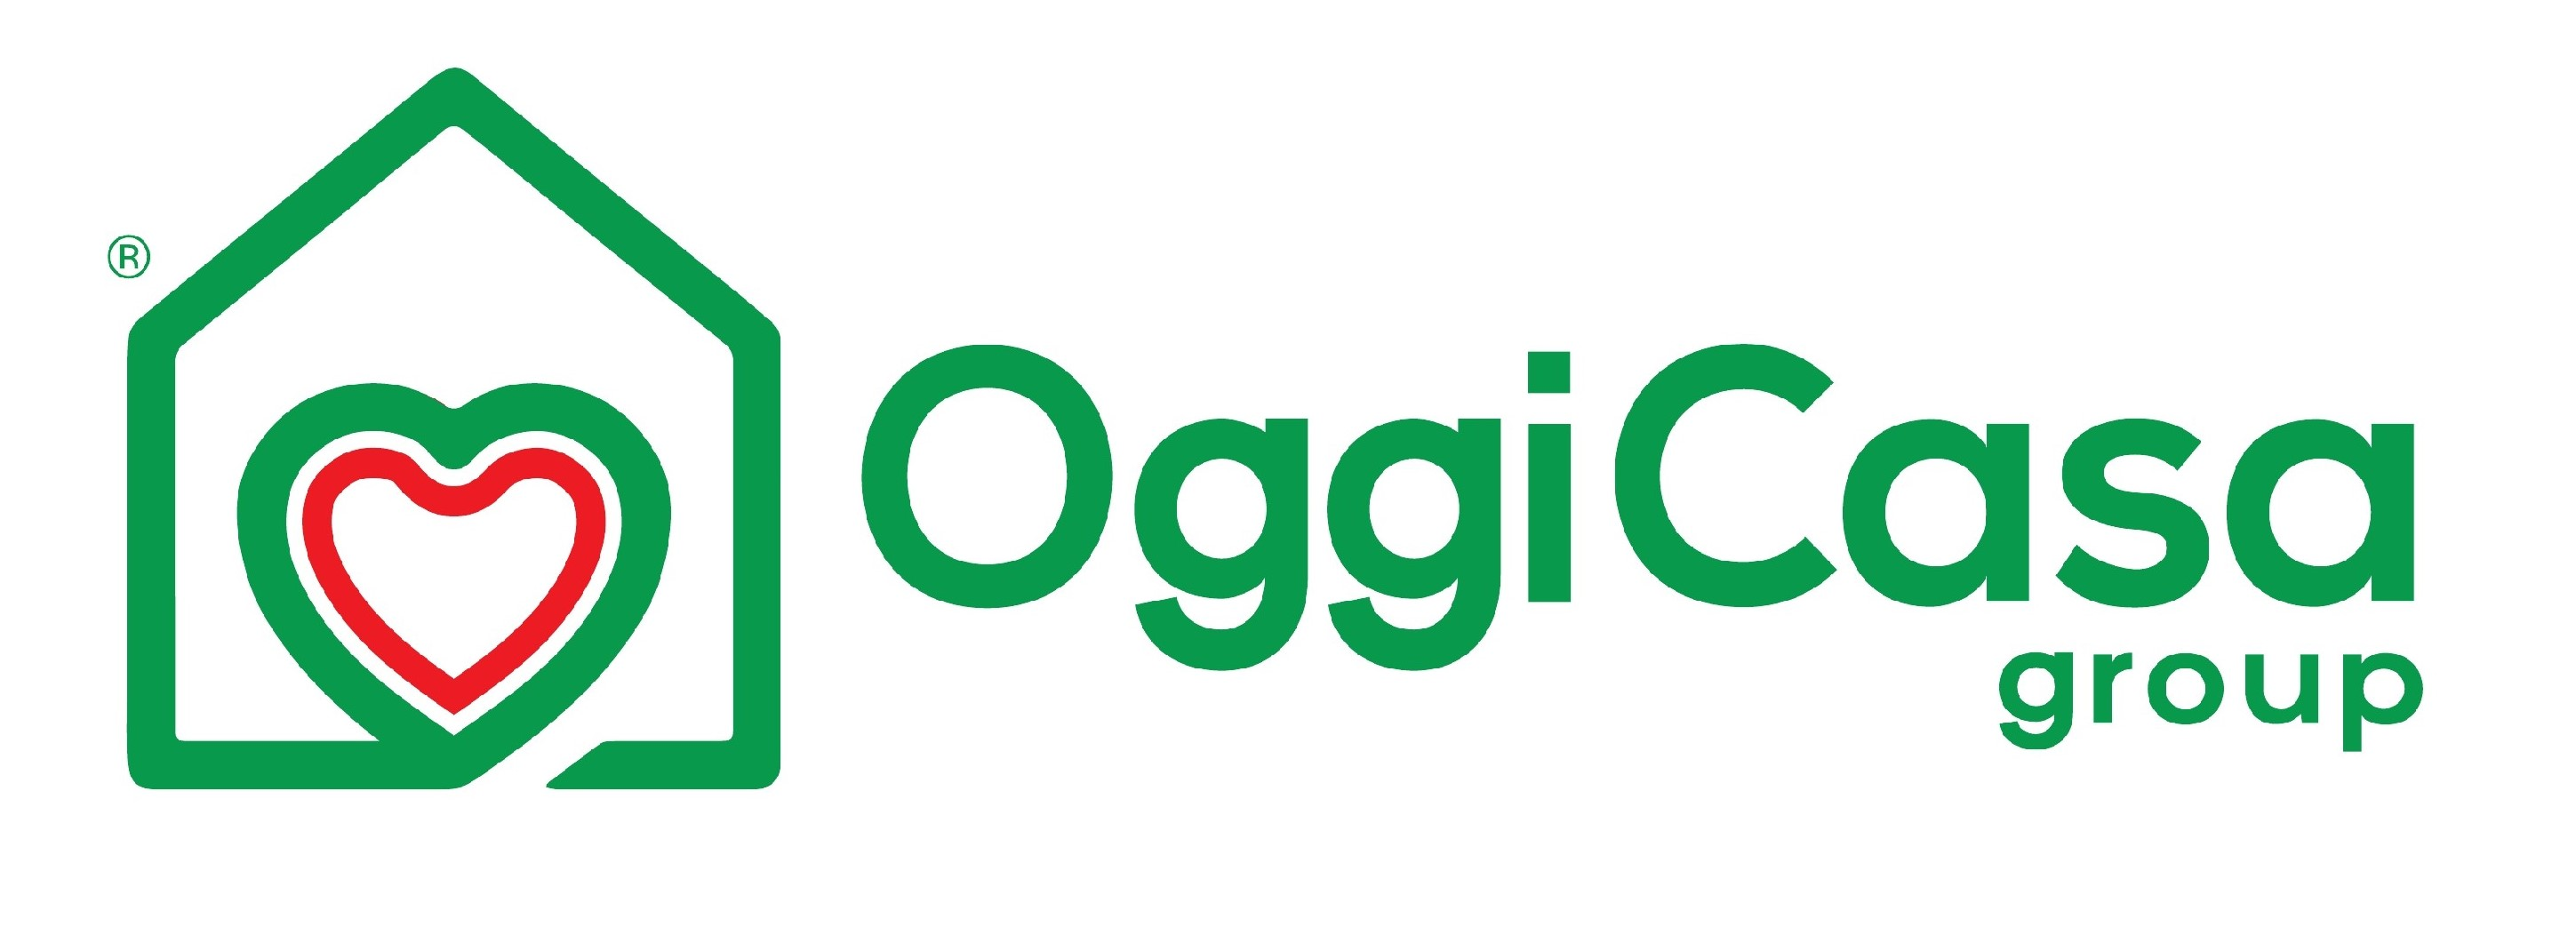 OggiCasa group